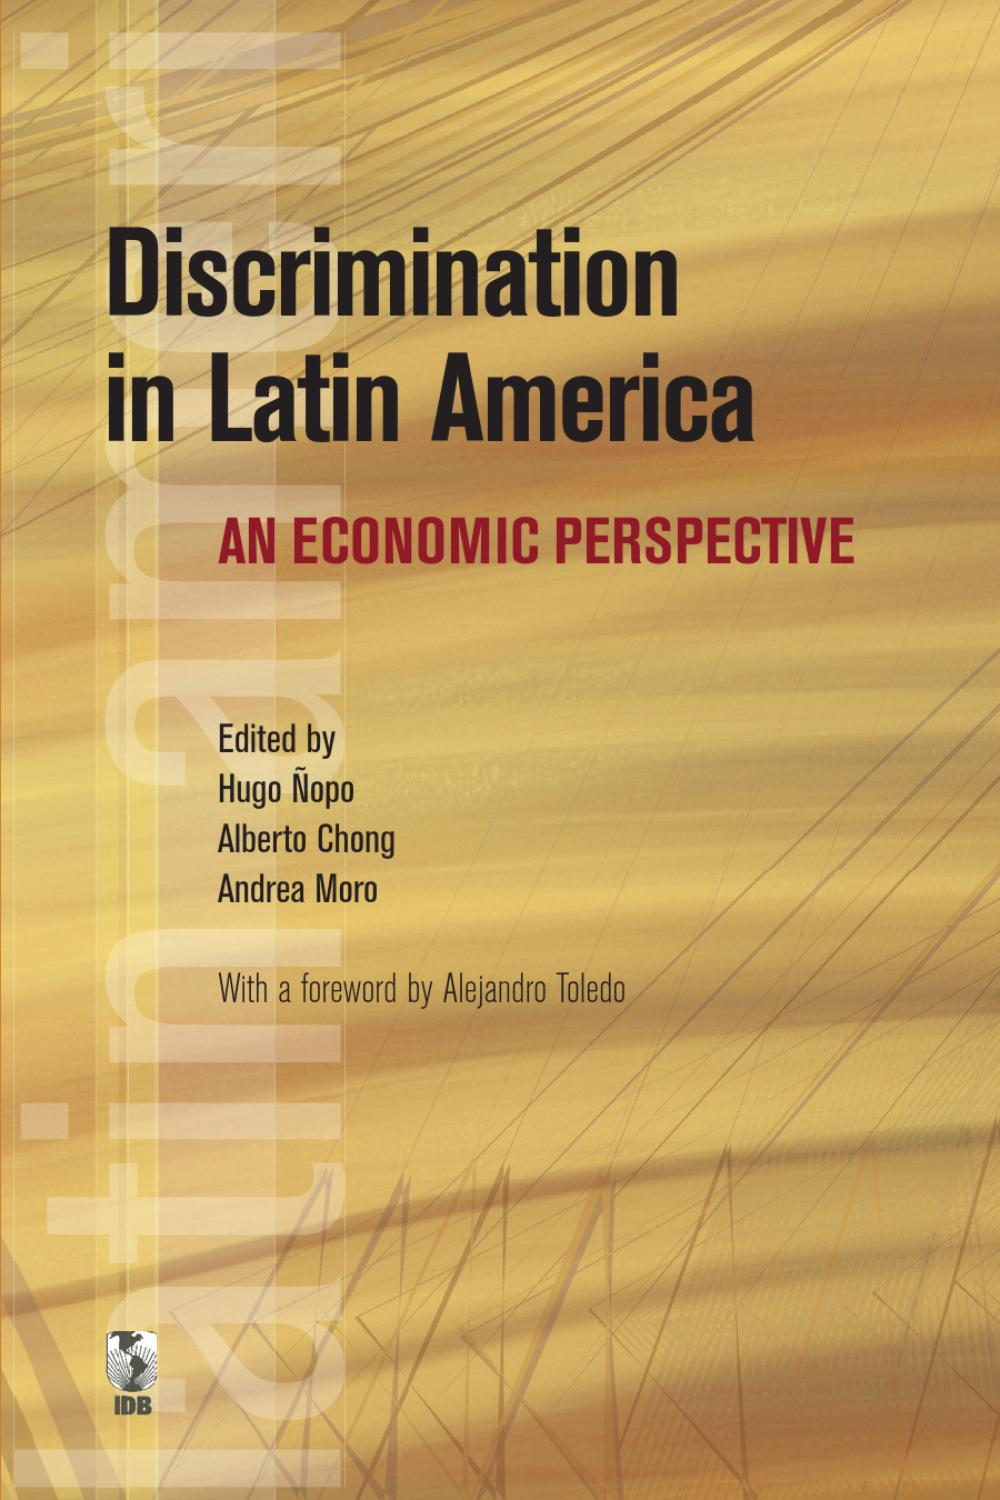 Discrimination in Latin America: An Economic Perspective by